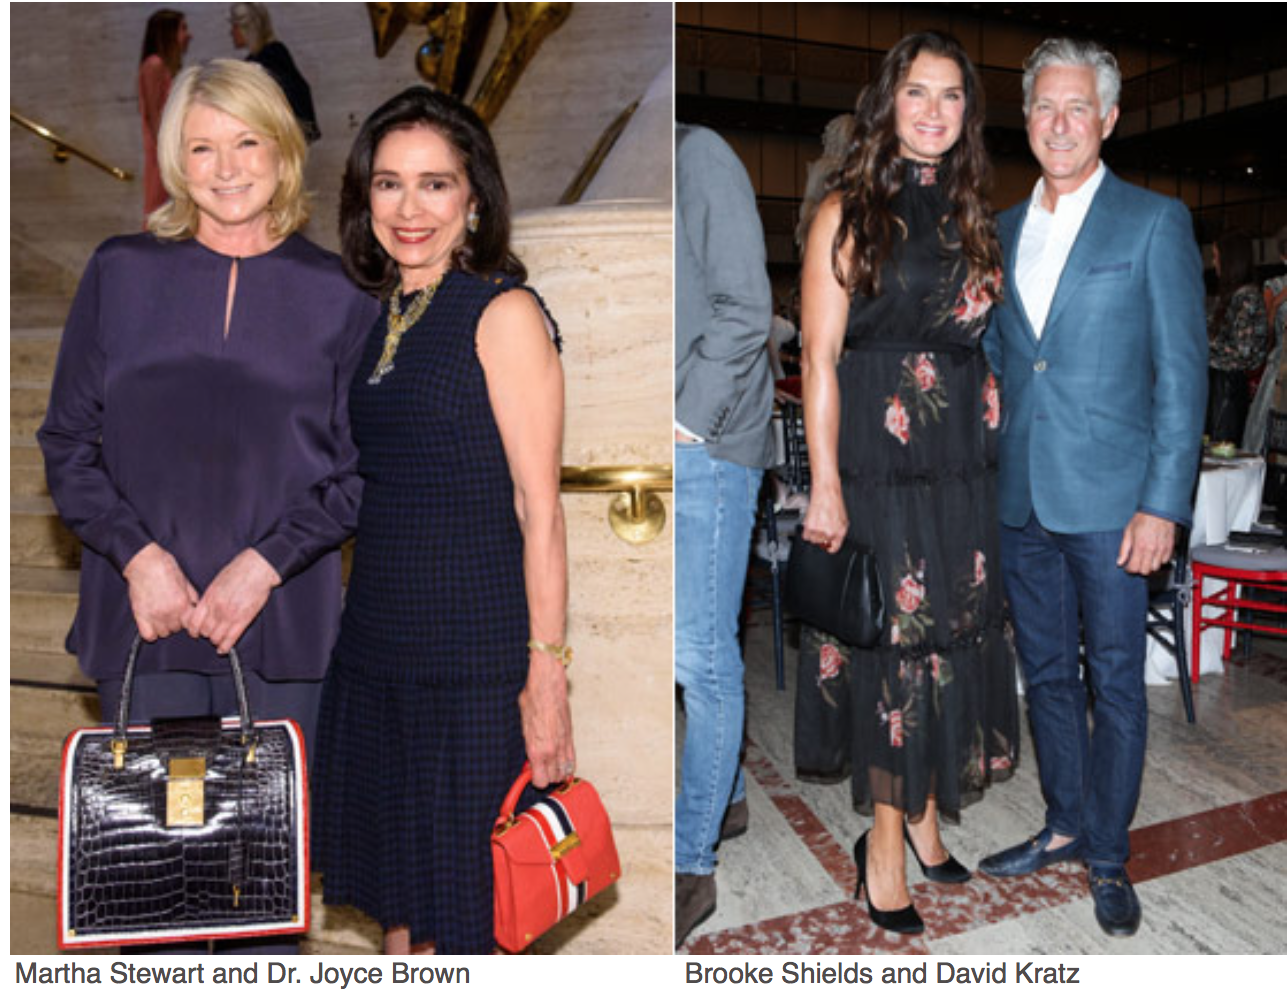 New York Fashion Week The kick-off to this week-long revelry of style and commerce is The Couture Council Luncheon and Award for the Artistry of Fashion.  Martha Steward Dr. Joyce Brown, Brooke shields, David Kratz